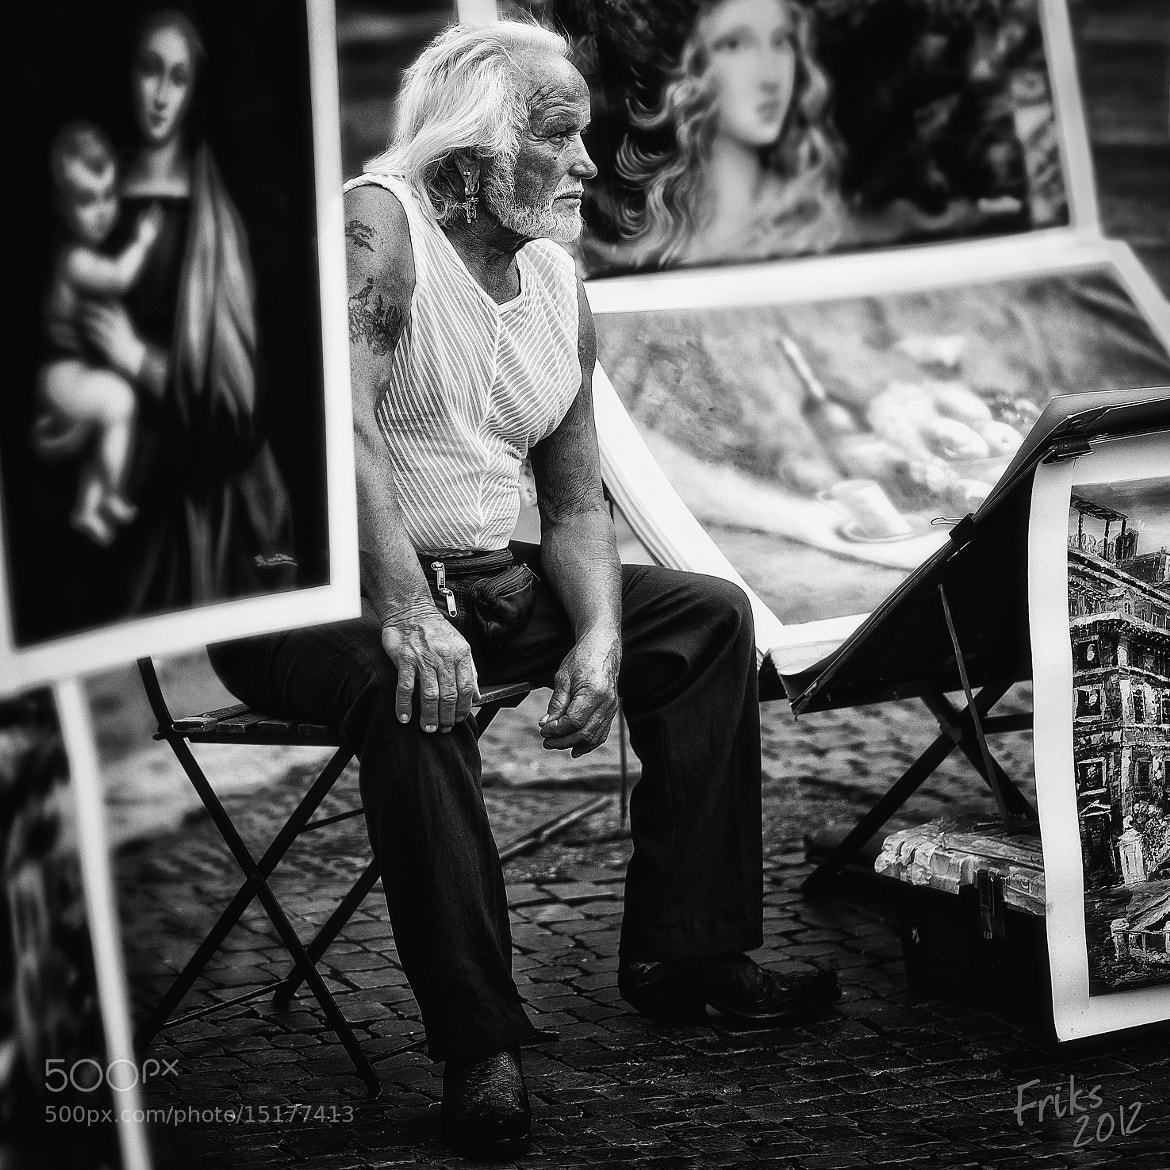 Photograph MICHELANGELO by Mr Friks on 500px